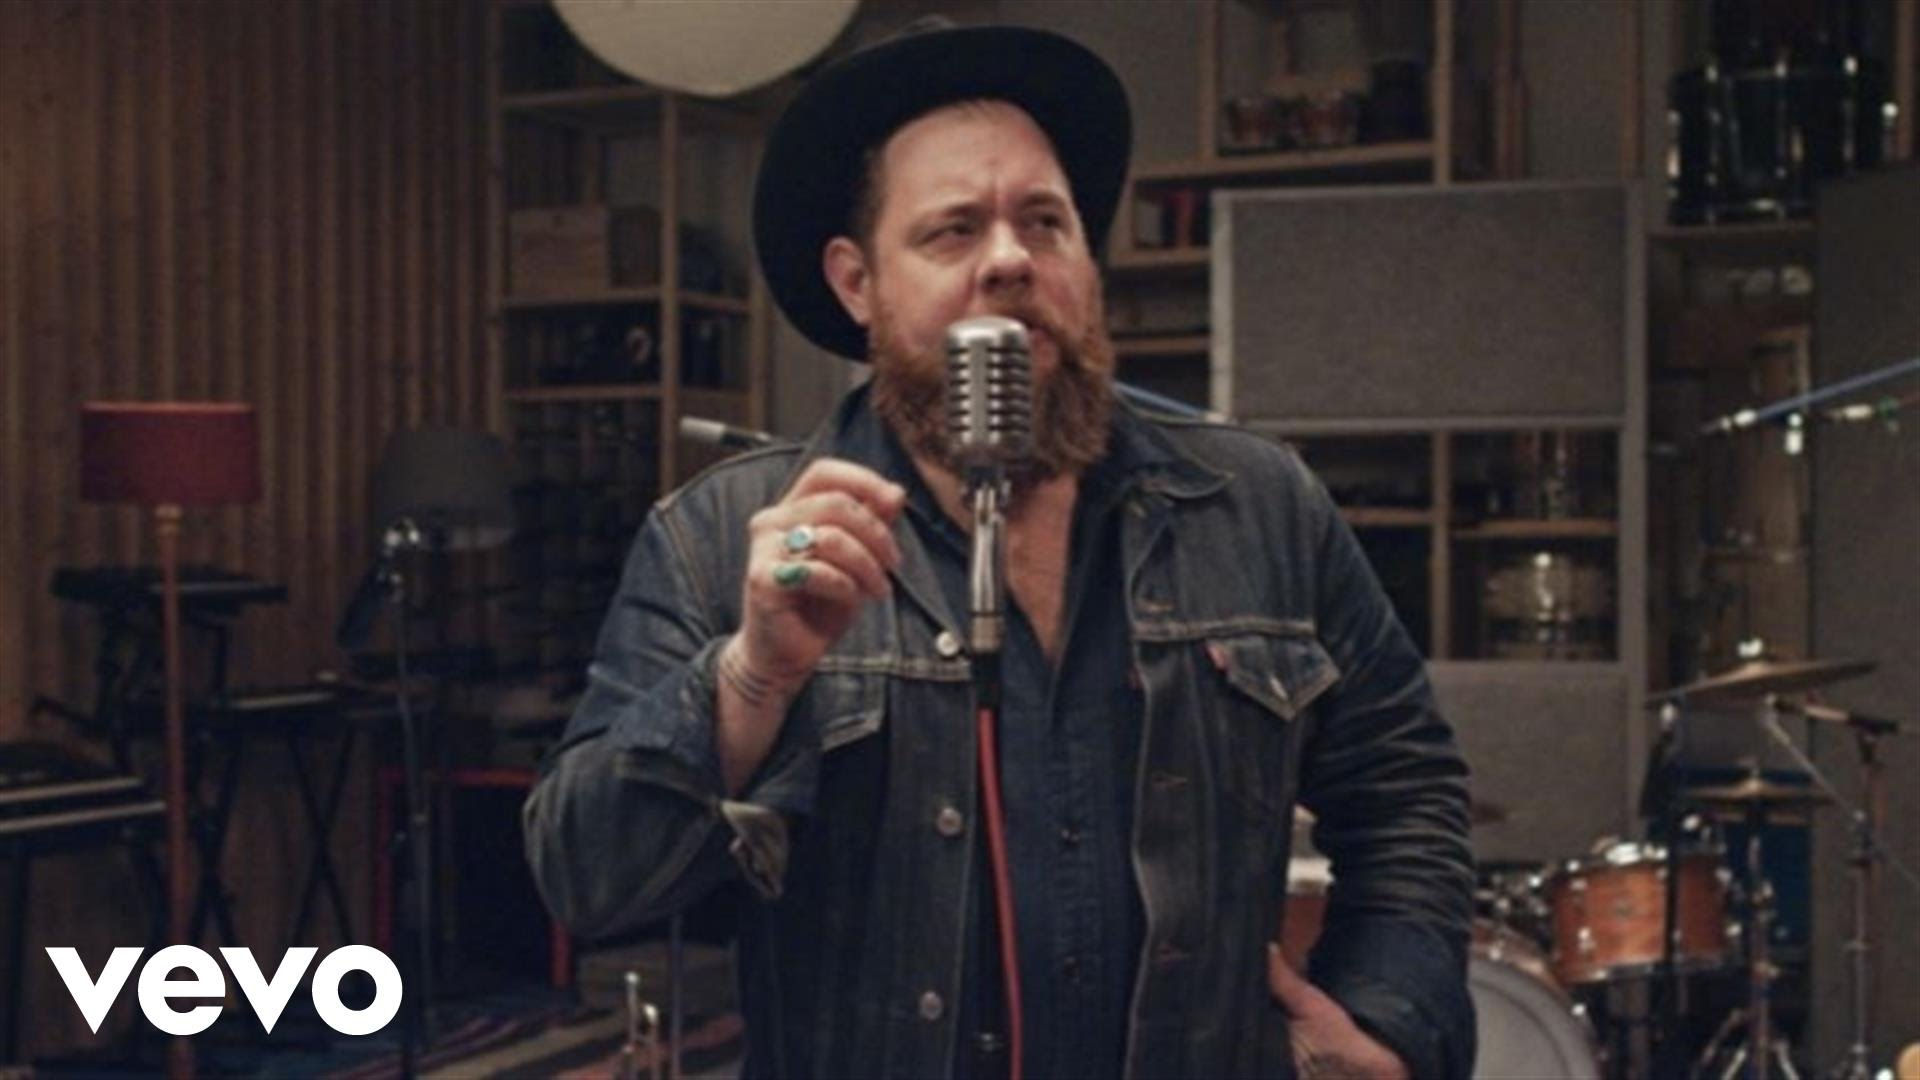 Nathaniel Rateliff & The Night Sweats add second date at Red Rocks - AXS